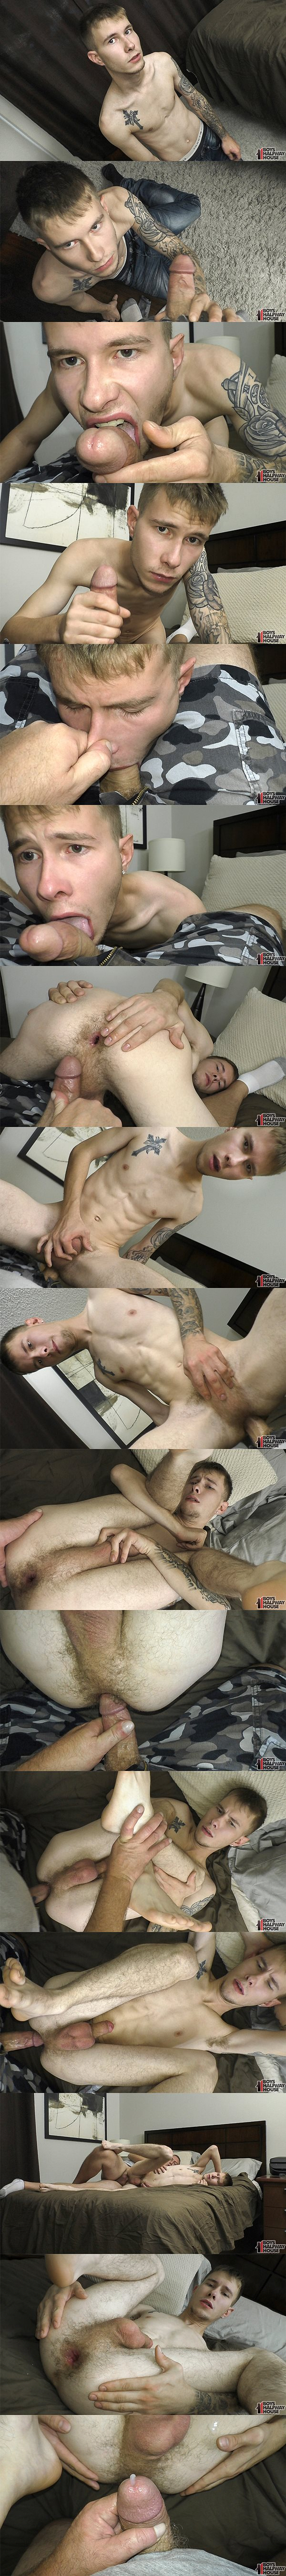 The house manager barebacks and breeds inked straight lad Keene's tight virgin ass in Keene's bottoming debut in Sorry Only Gets You So Far at Boyshalfwayhouse 02